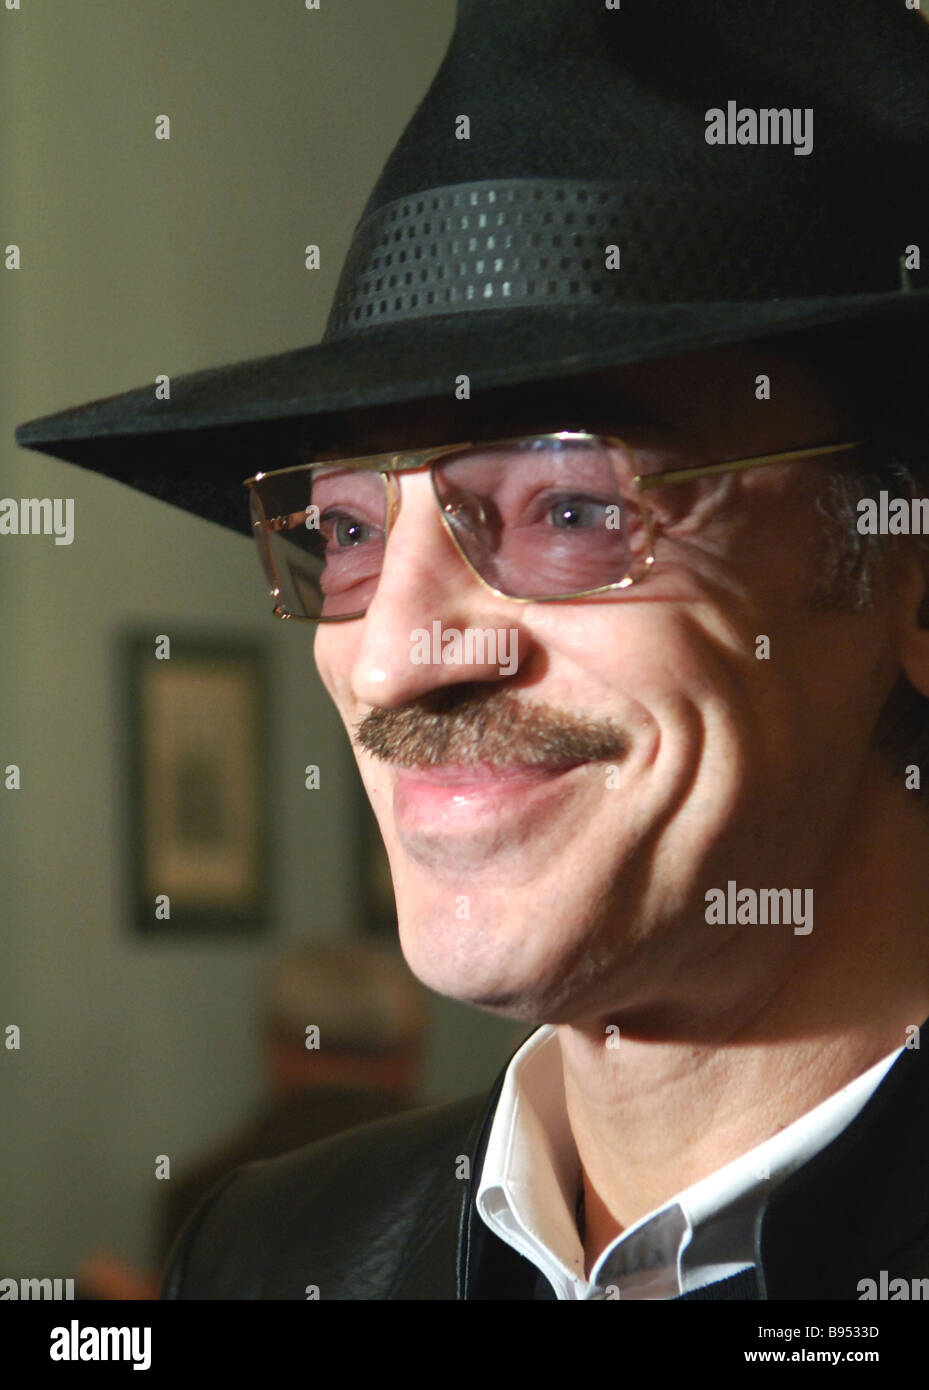 The son of Mikhail Boyarsky will be in charge of the St. Petersburg TV channel 28.07.2012 19